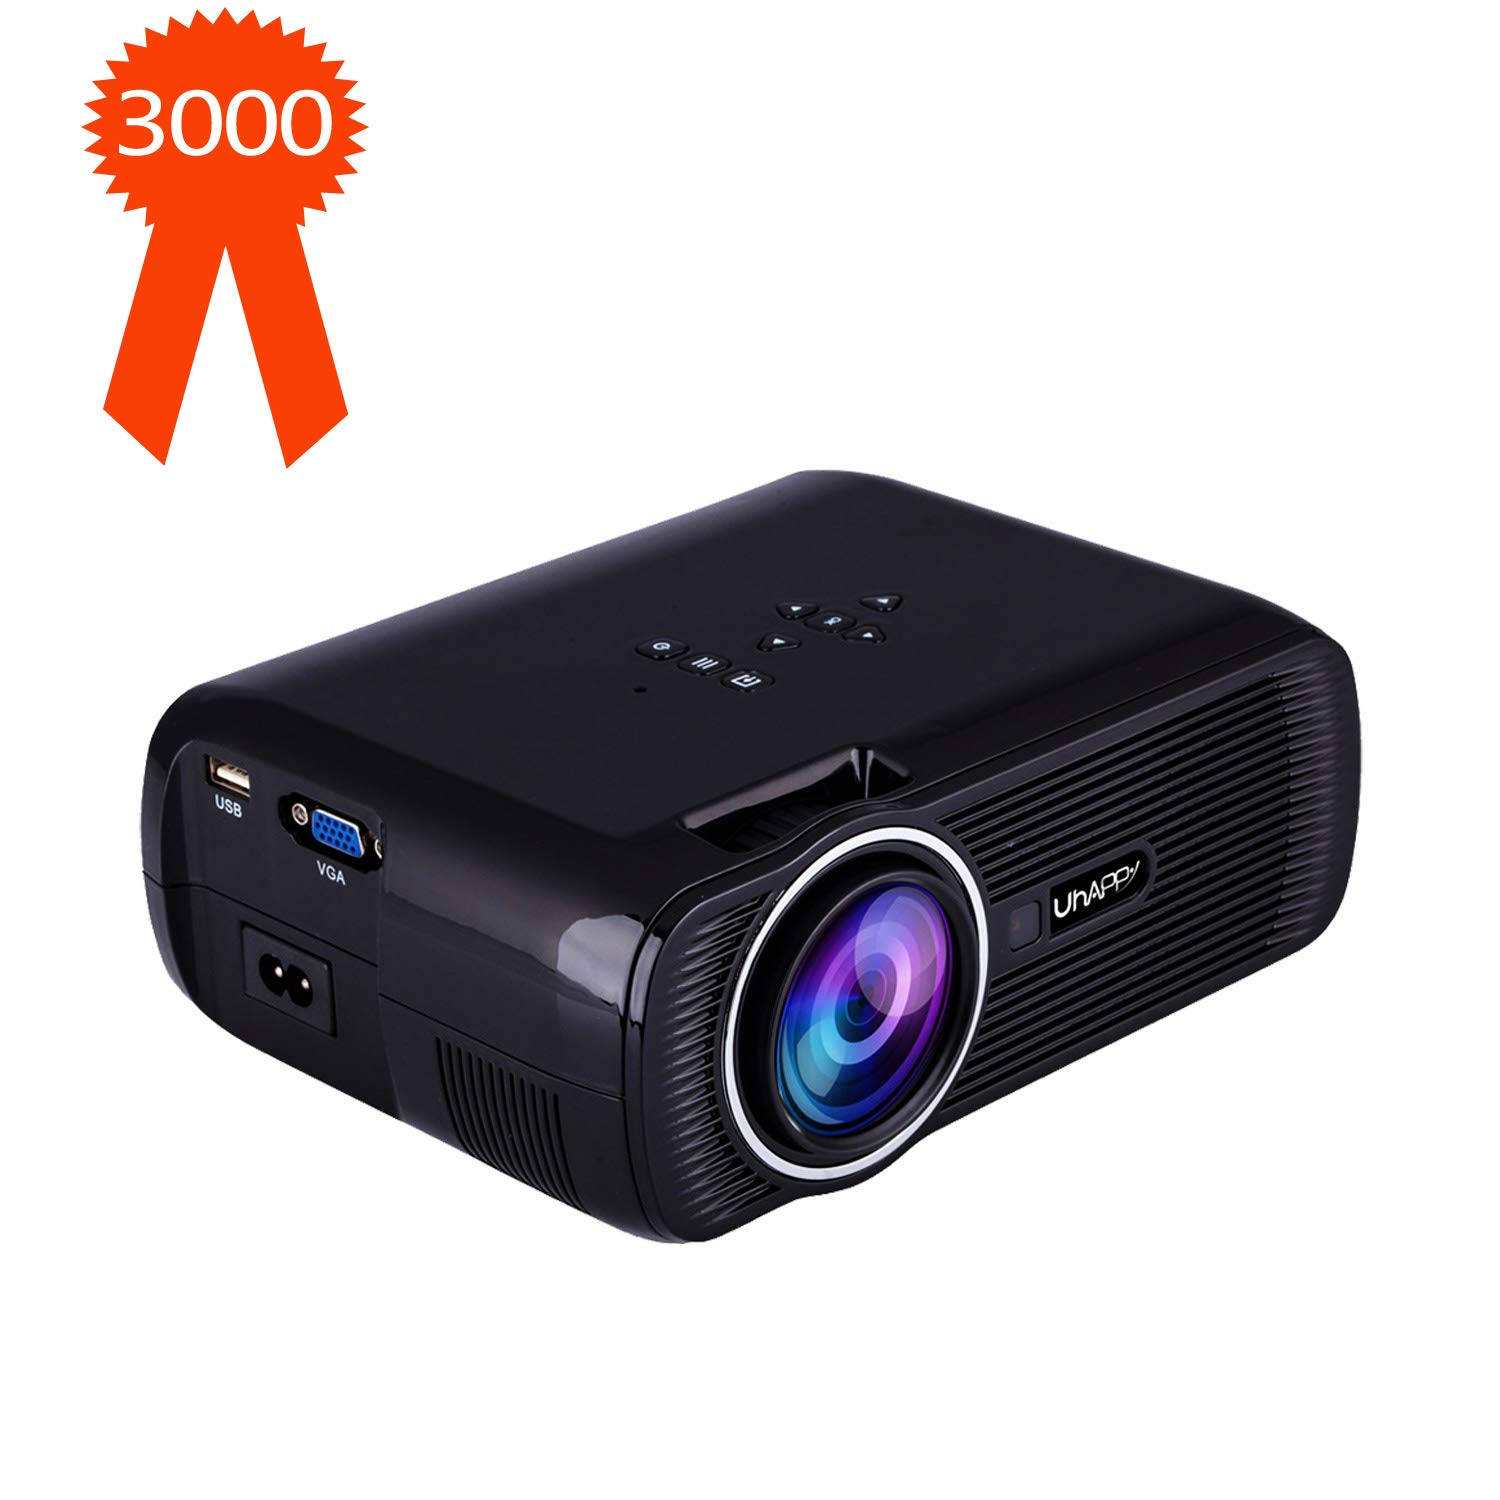 TOPRUI 2018 Mini LED Movie Video Projector, +30% Brighter Lumens Full HD Portable Projector 1080P with 170'' Big Display for Outdoor/ Home Theater HDMI,TV,SD Card,AV,VGA,USB, iPhone Android Laptop